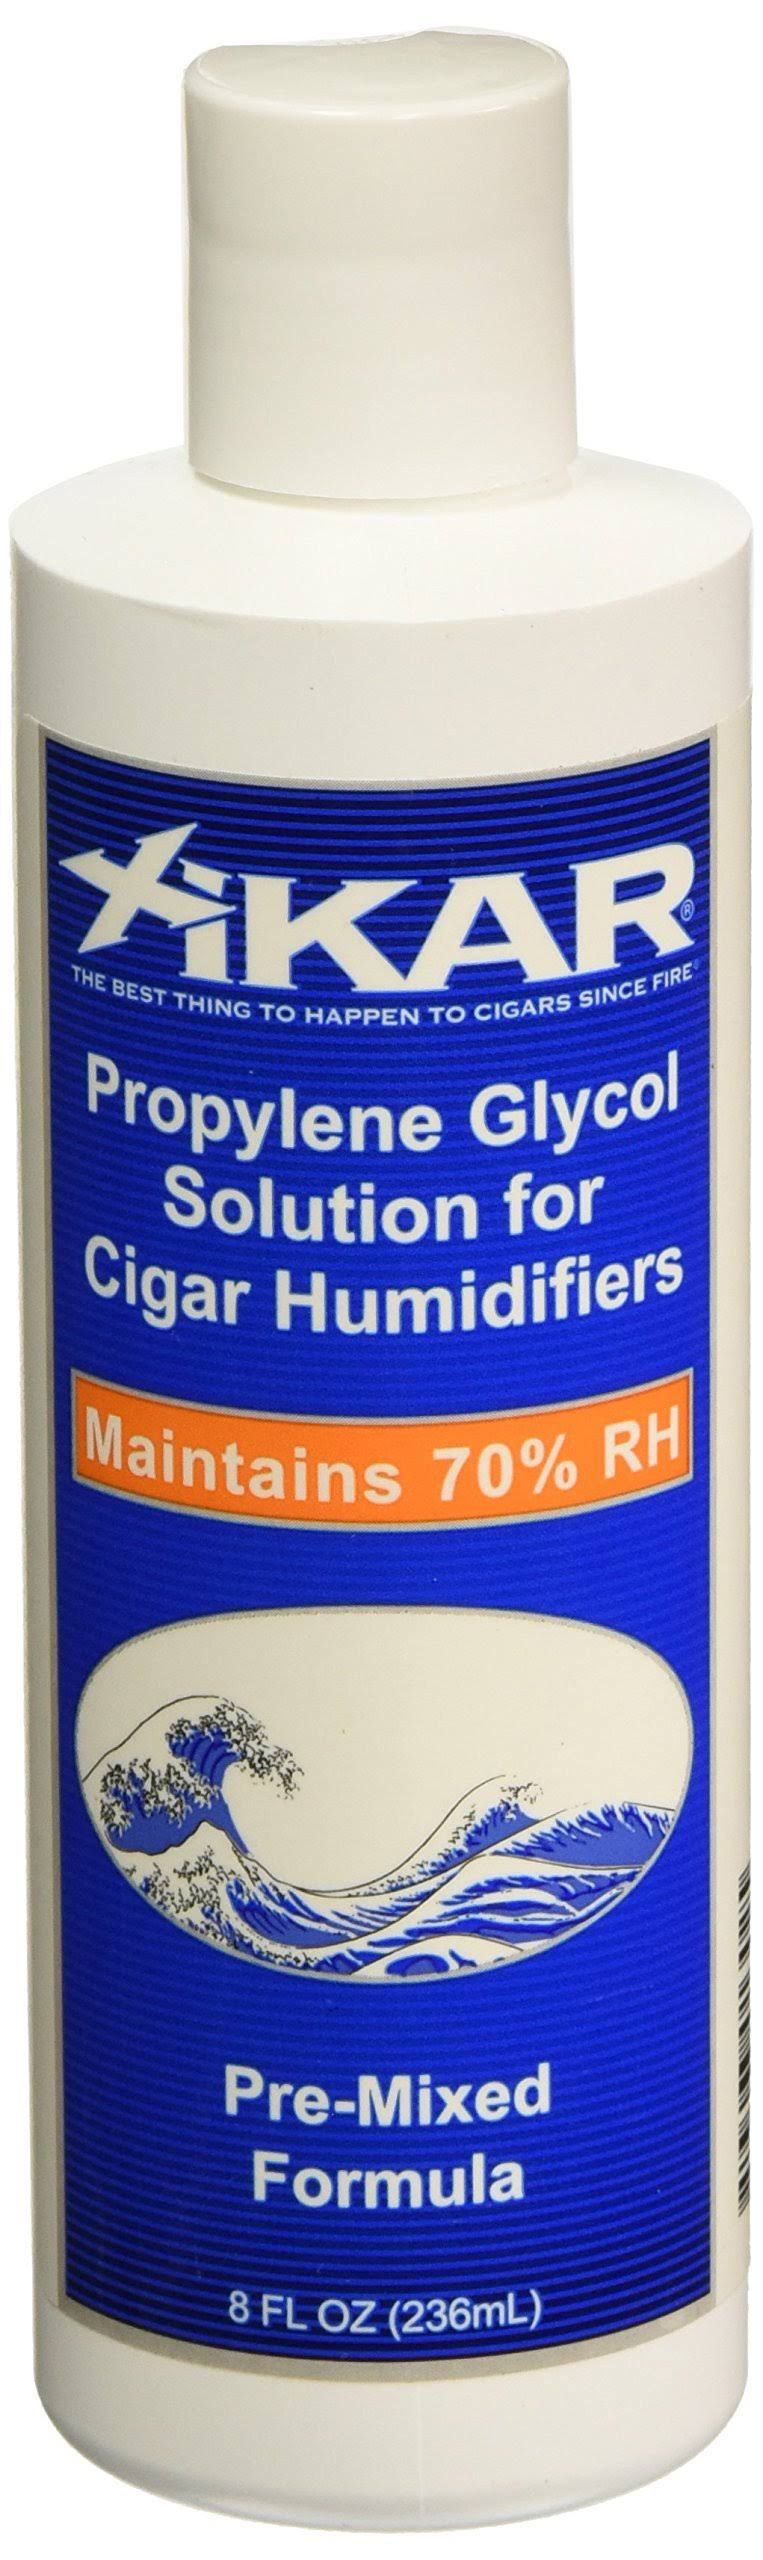 The Big Easy Tobacco Accessories Xikar PG Solution Propylene Glycol Pre Mix Cigar Humidifiers 8 fl oz 814XI